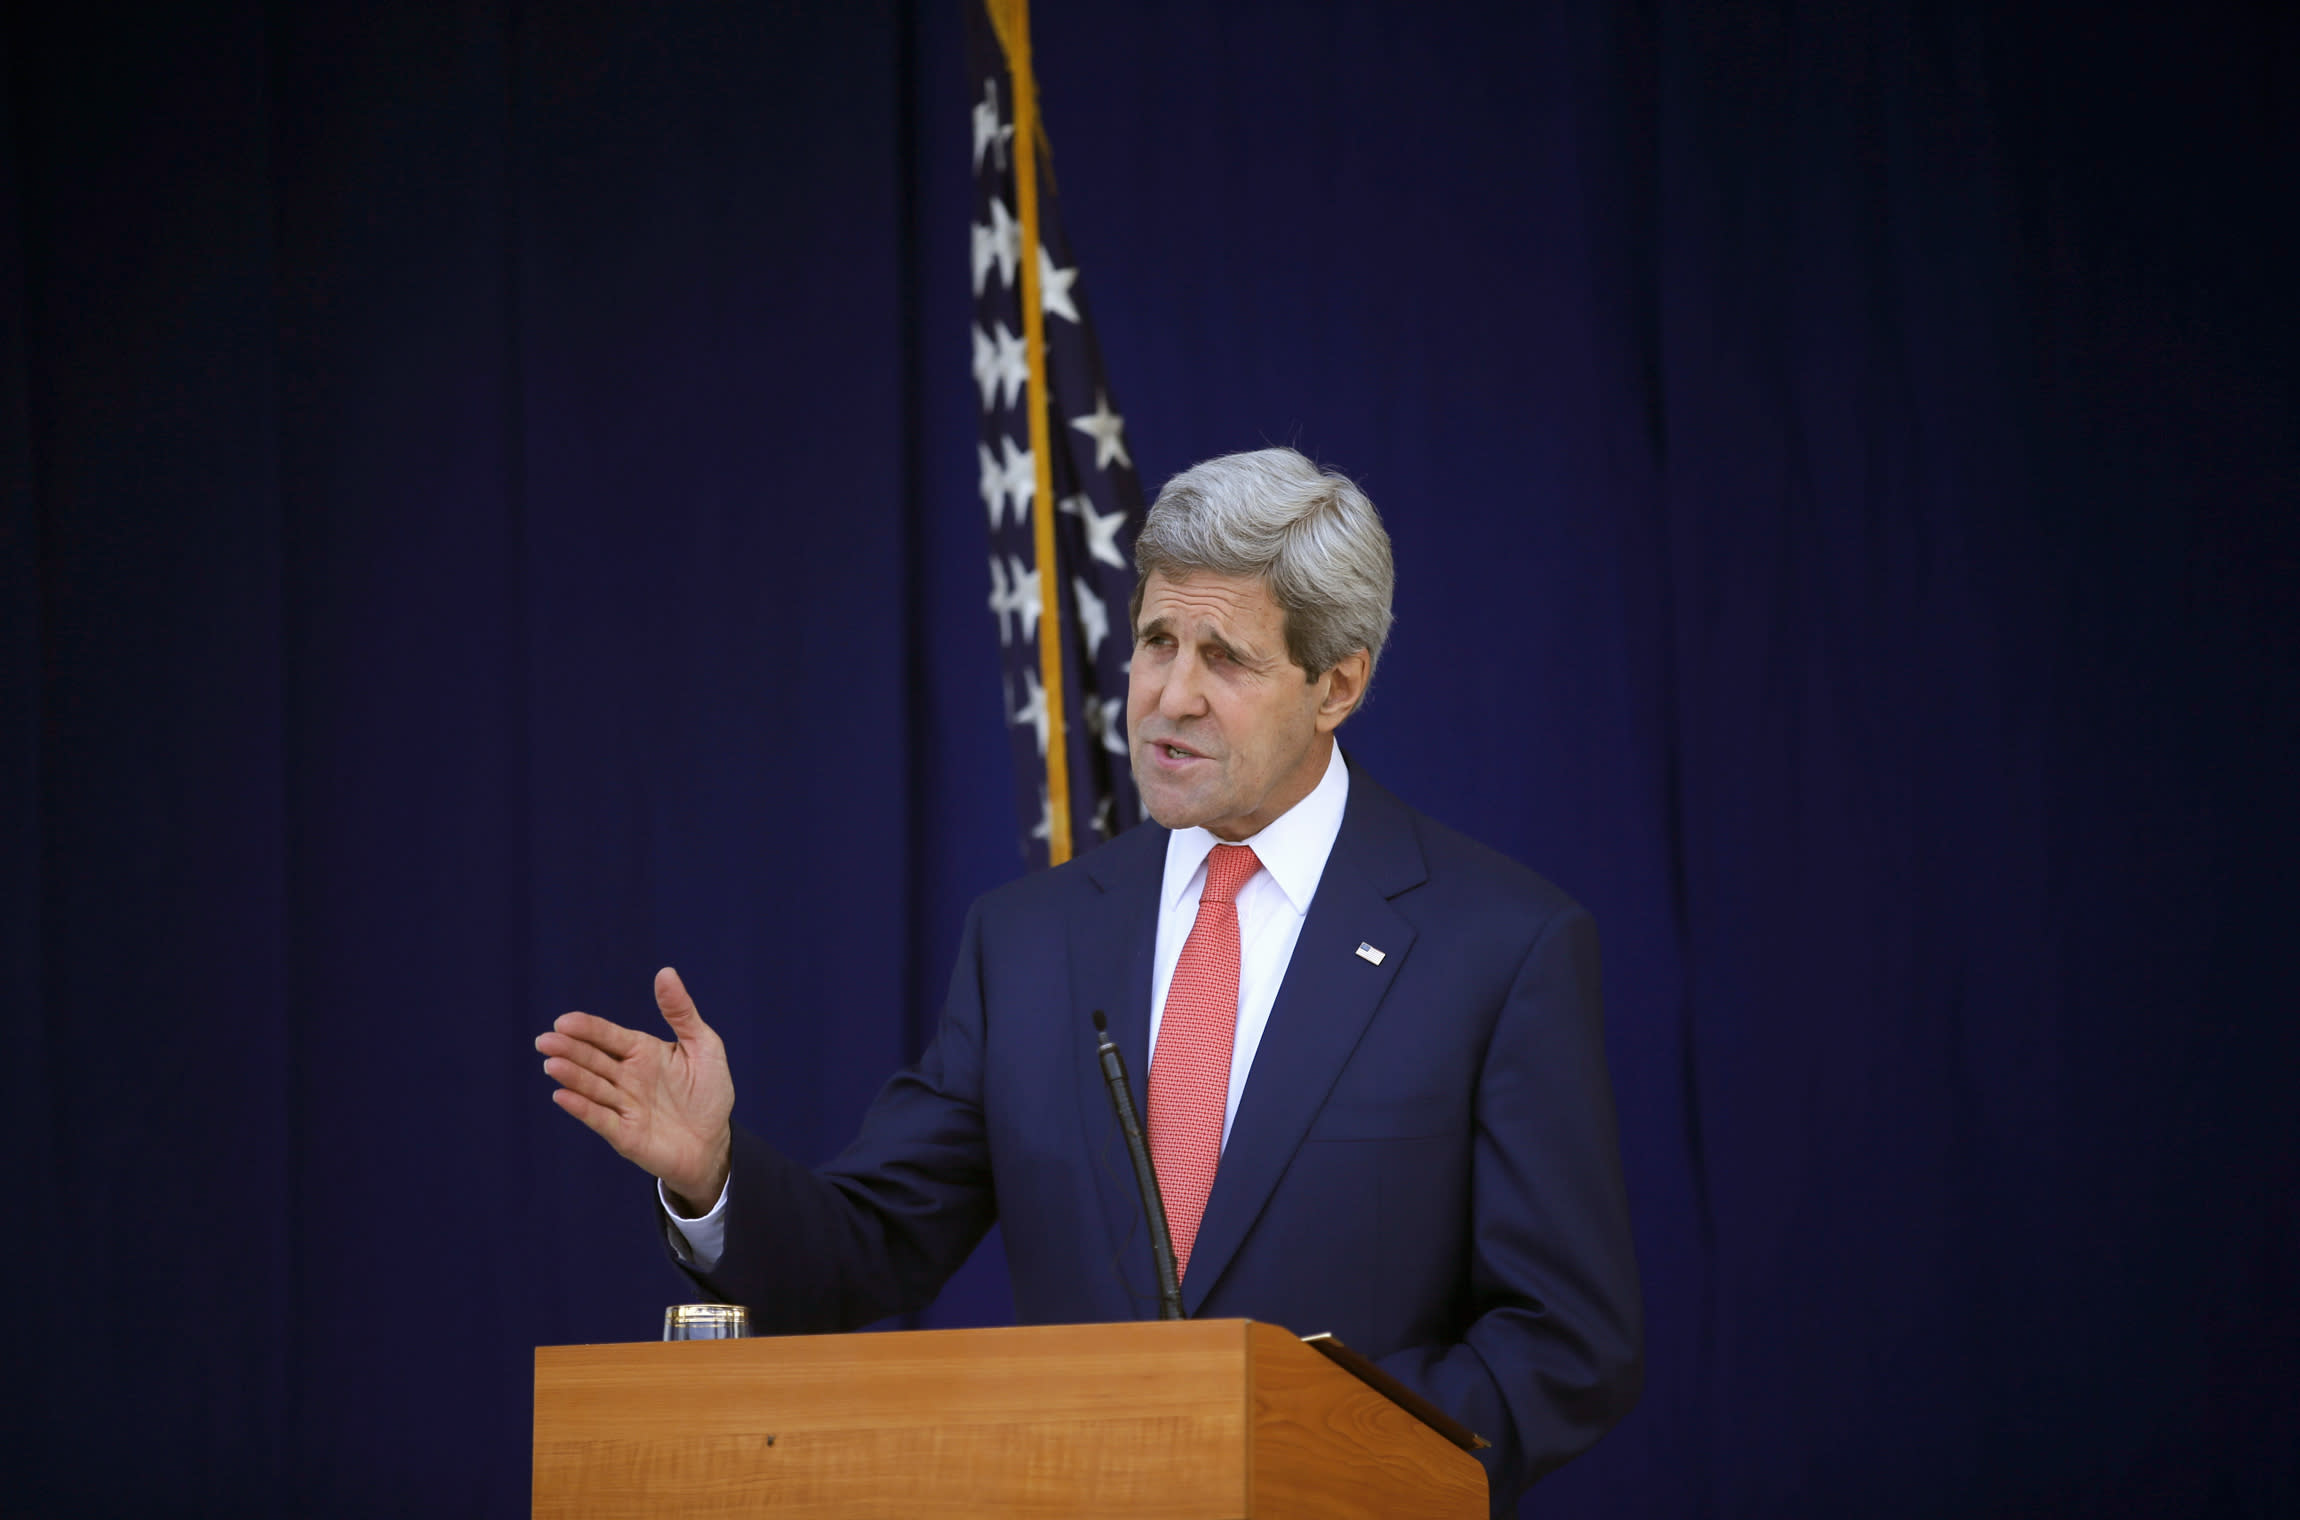 Kerry heading to Ukraine amid concern over conflict